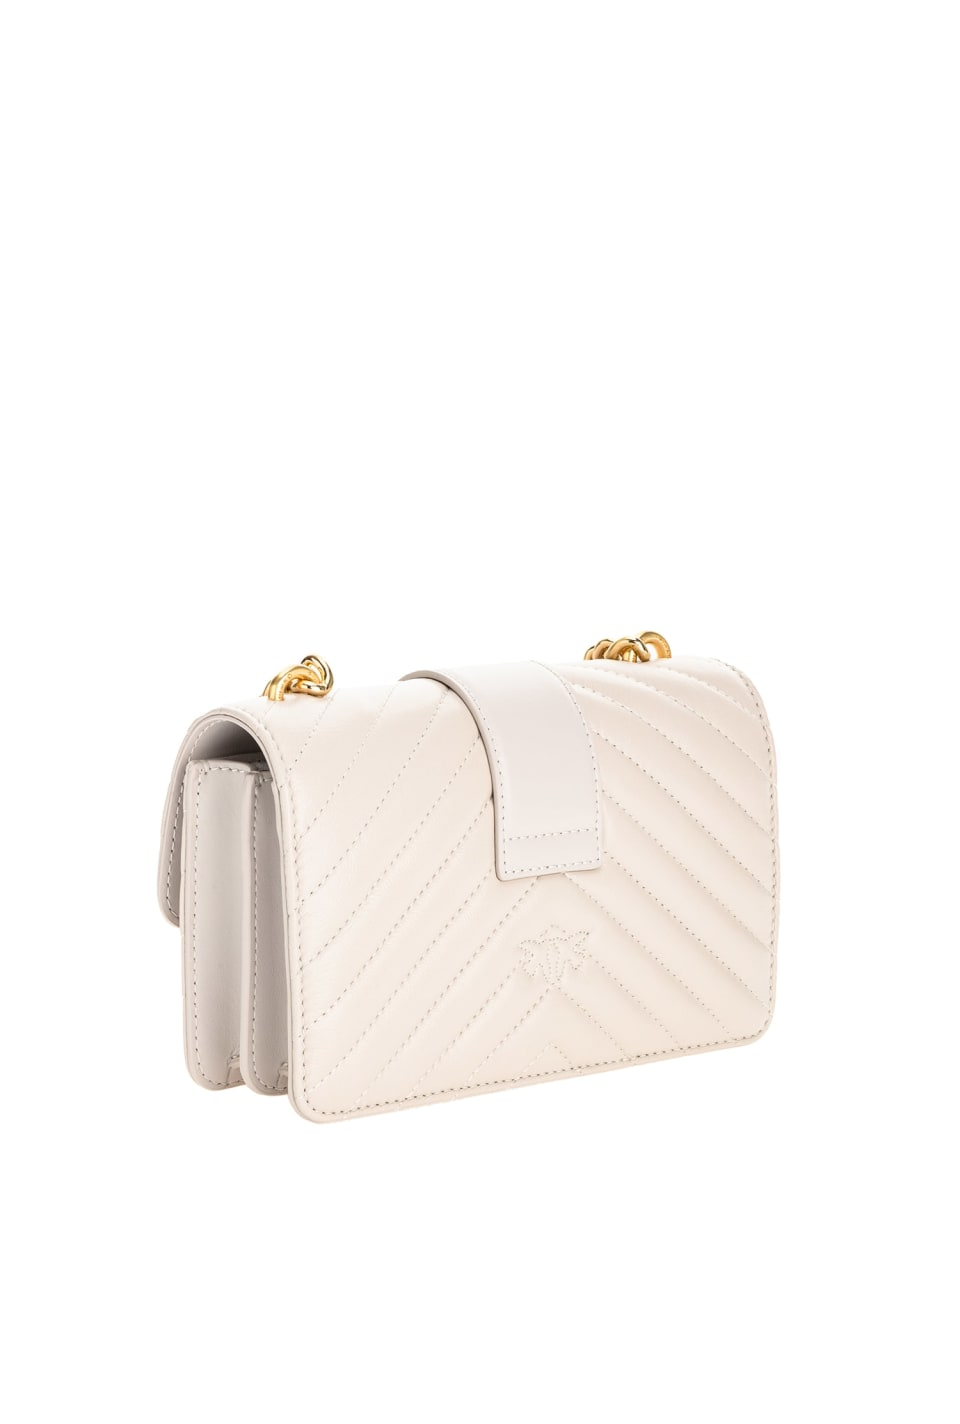 Mini Love Bag Mix in nappa leather - Pinko